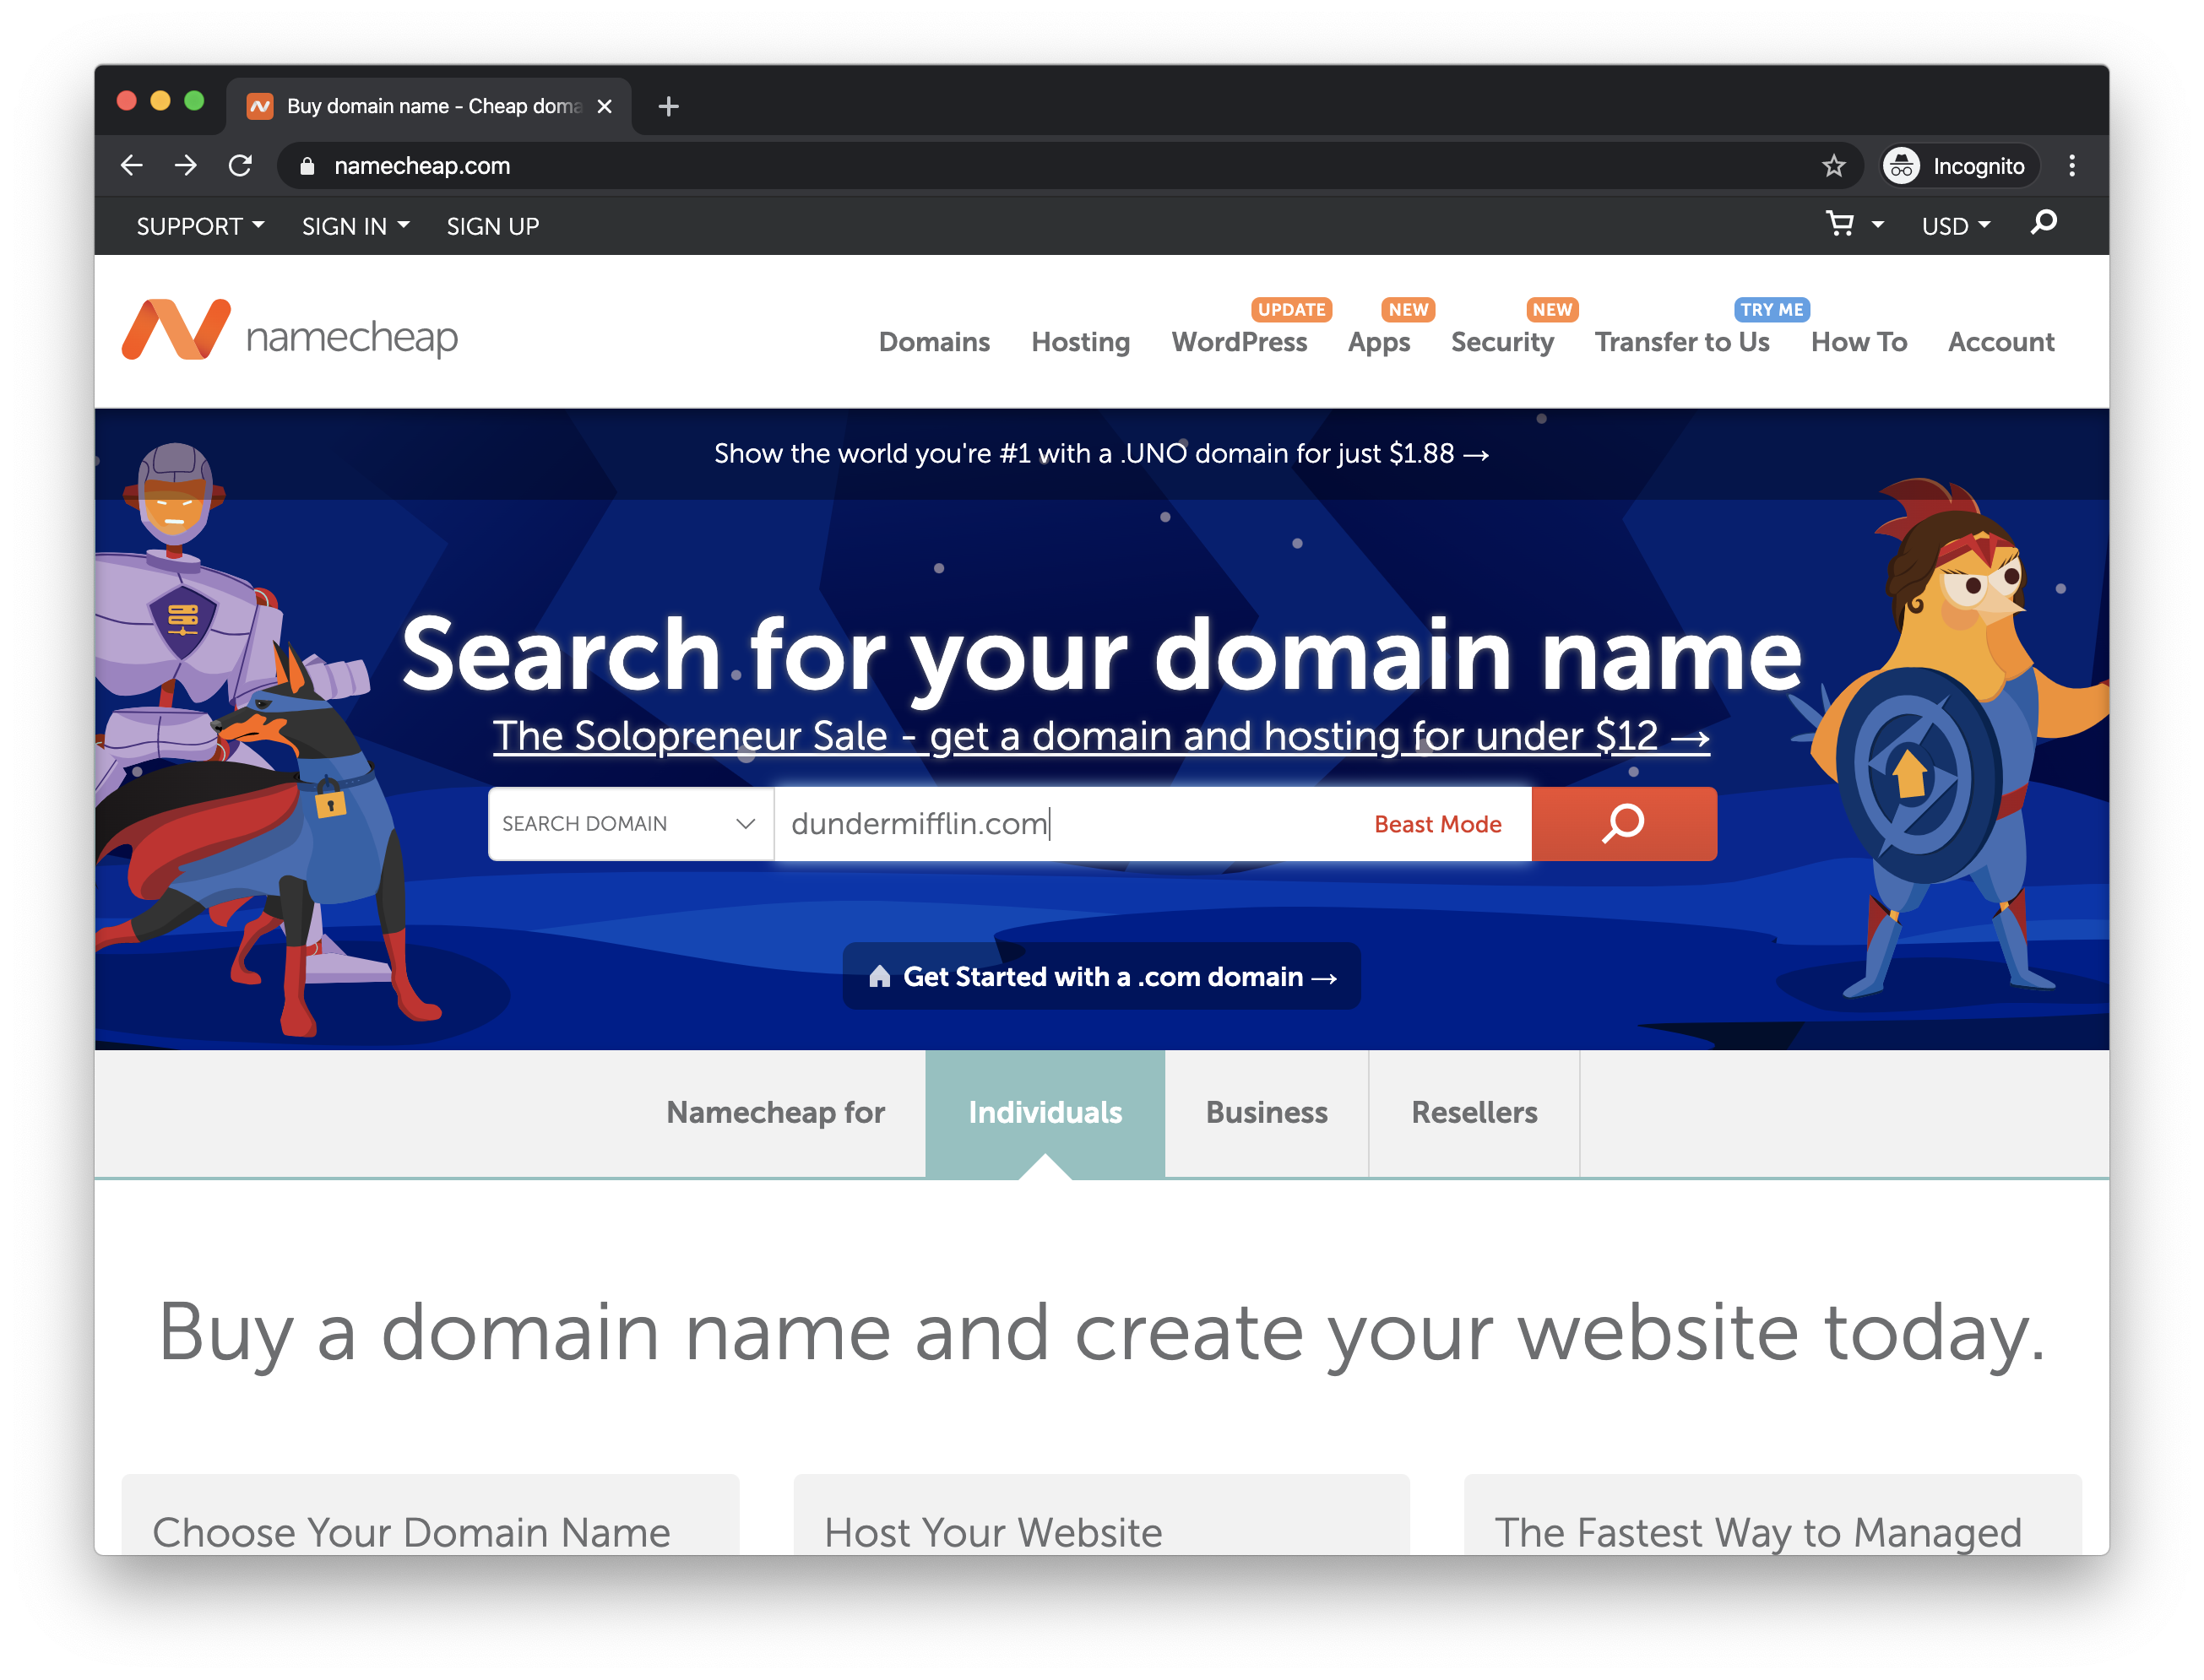 The Namecheap homepage